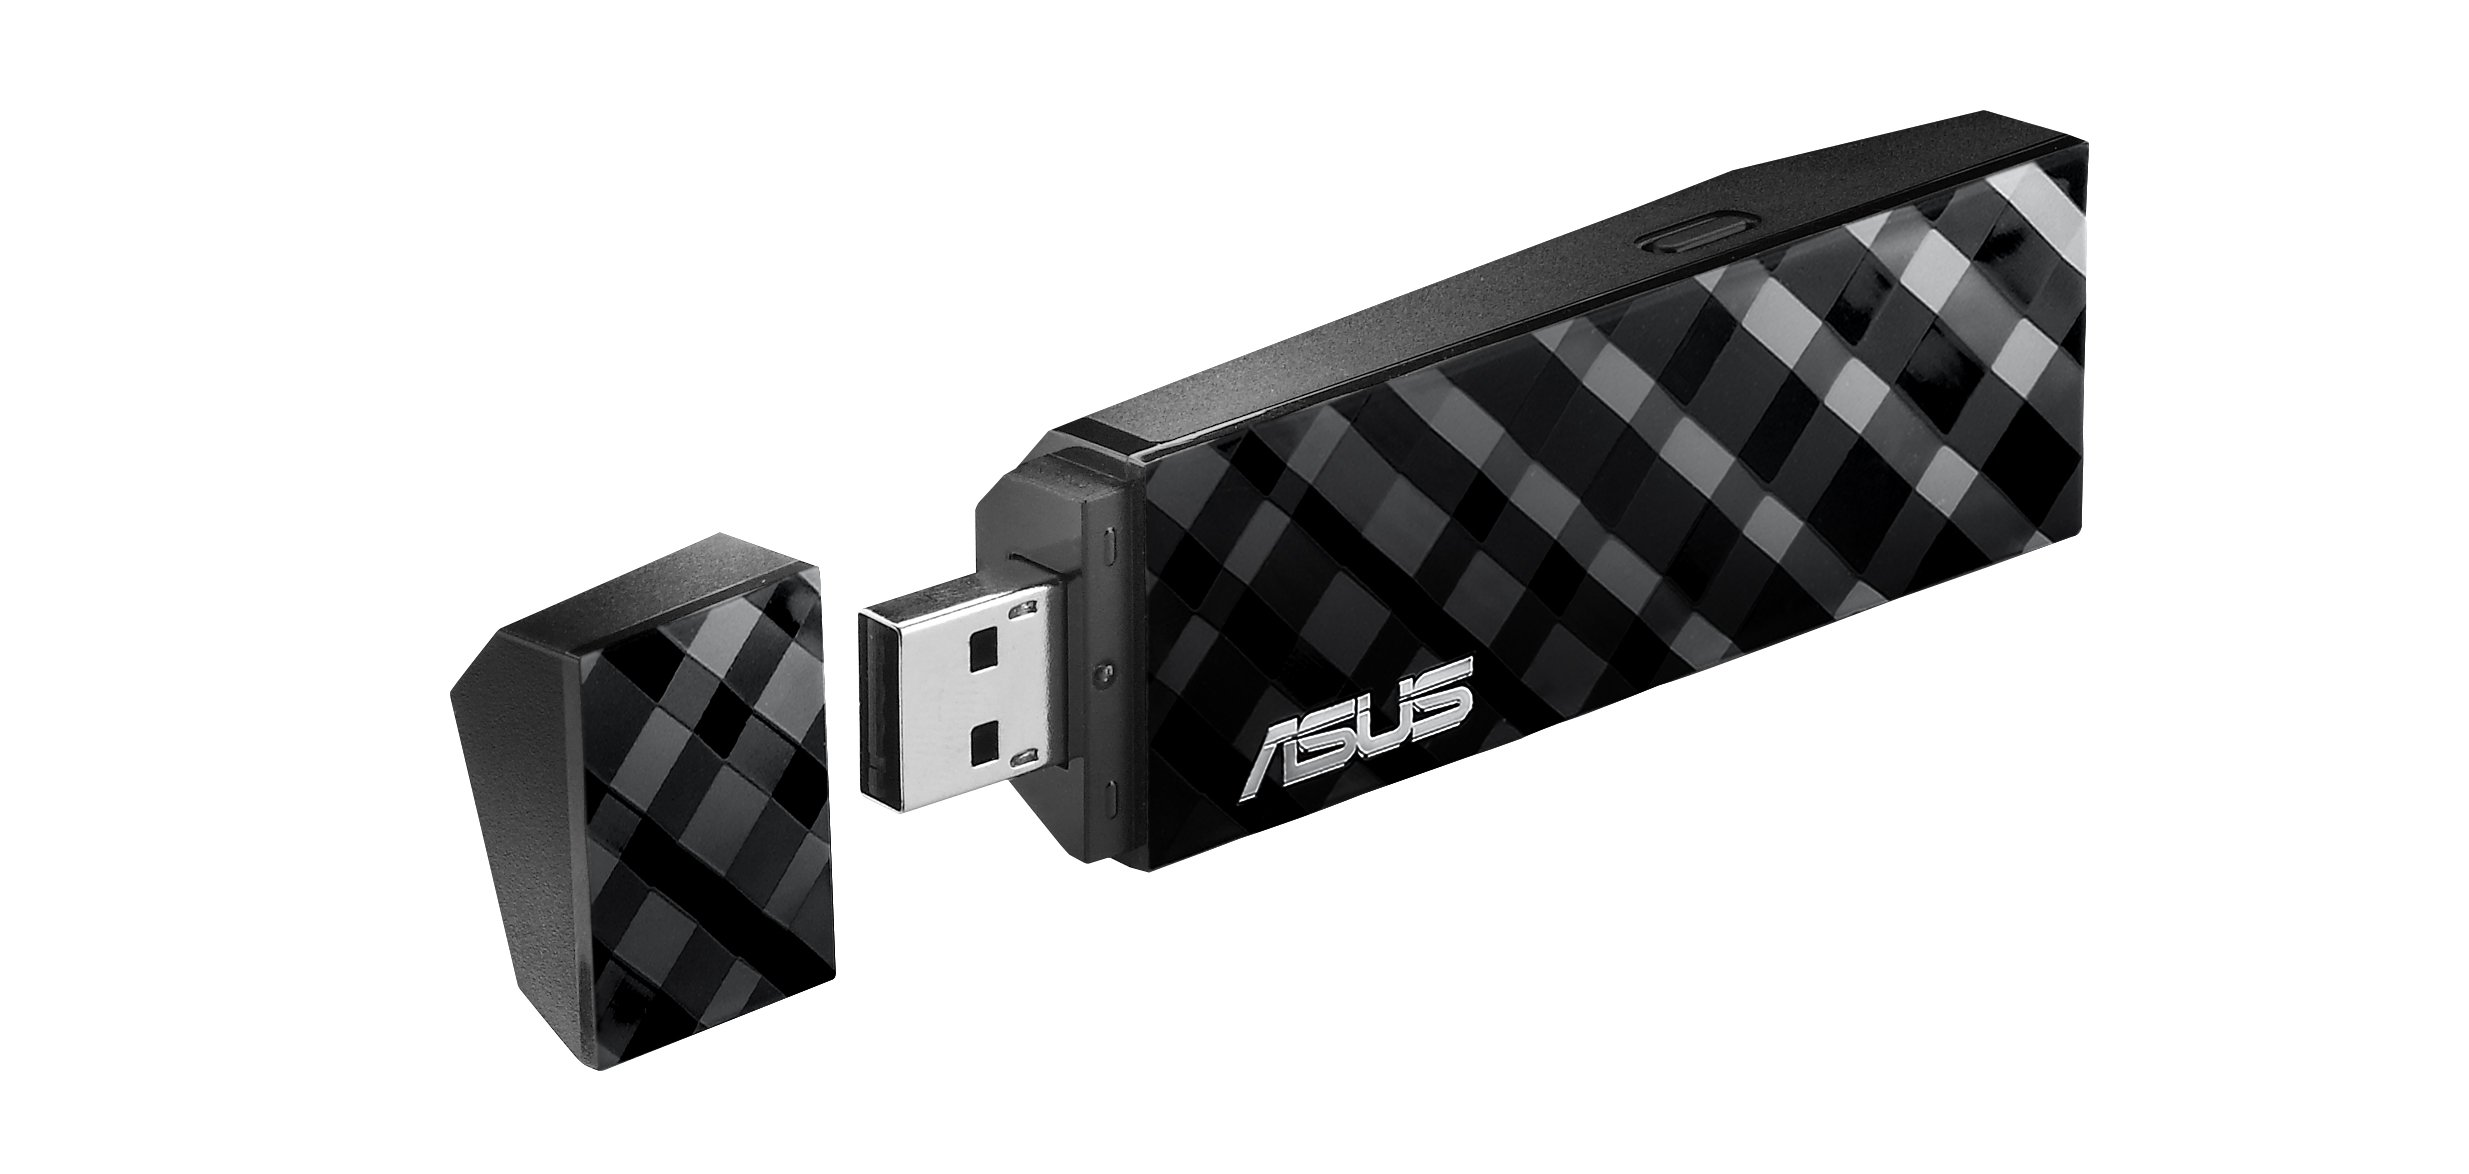 Asus Dual Band (2.4GHz 300Mbps/5GHz 300Mbps) Wireless-N USB Adapter with Graphical Easy Interface (USB-N53) by ASUS